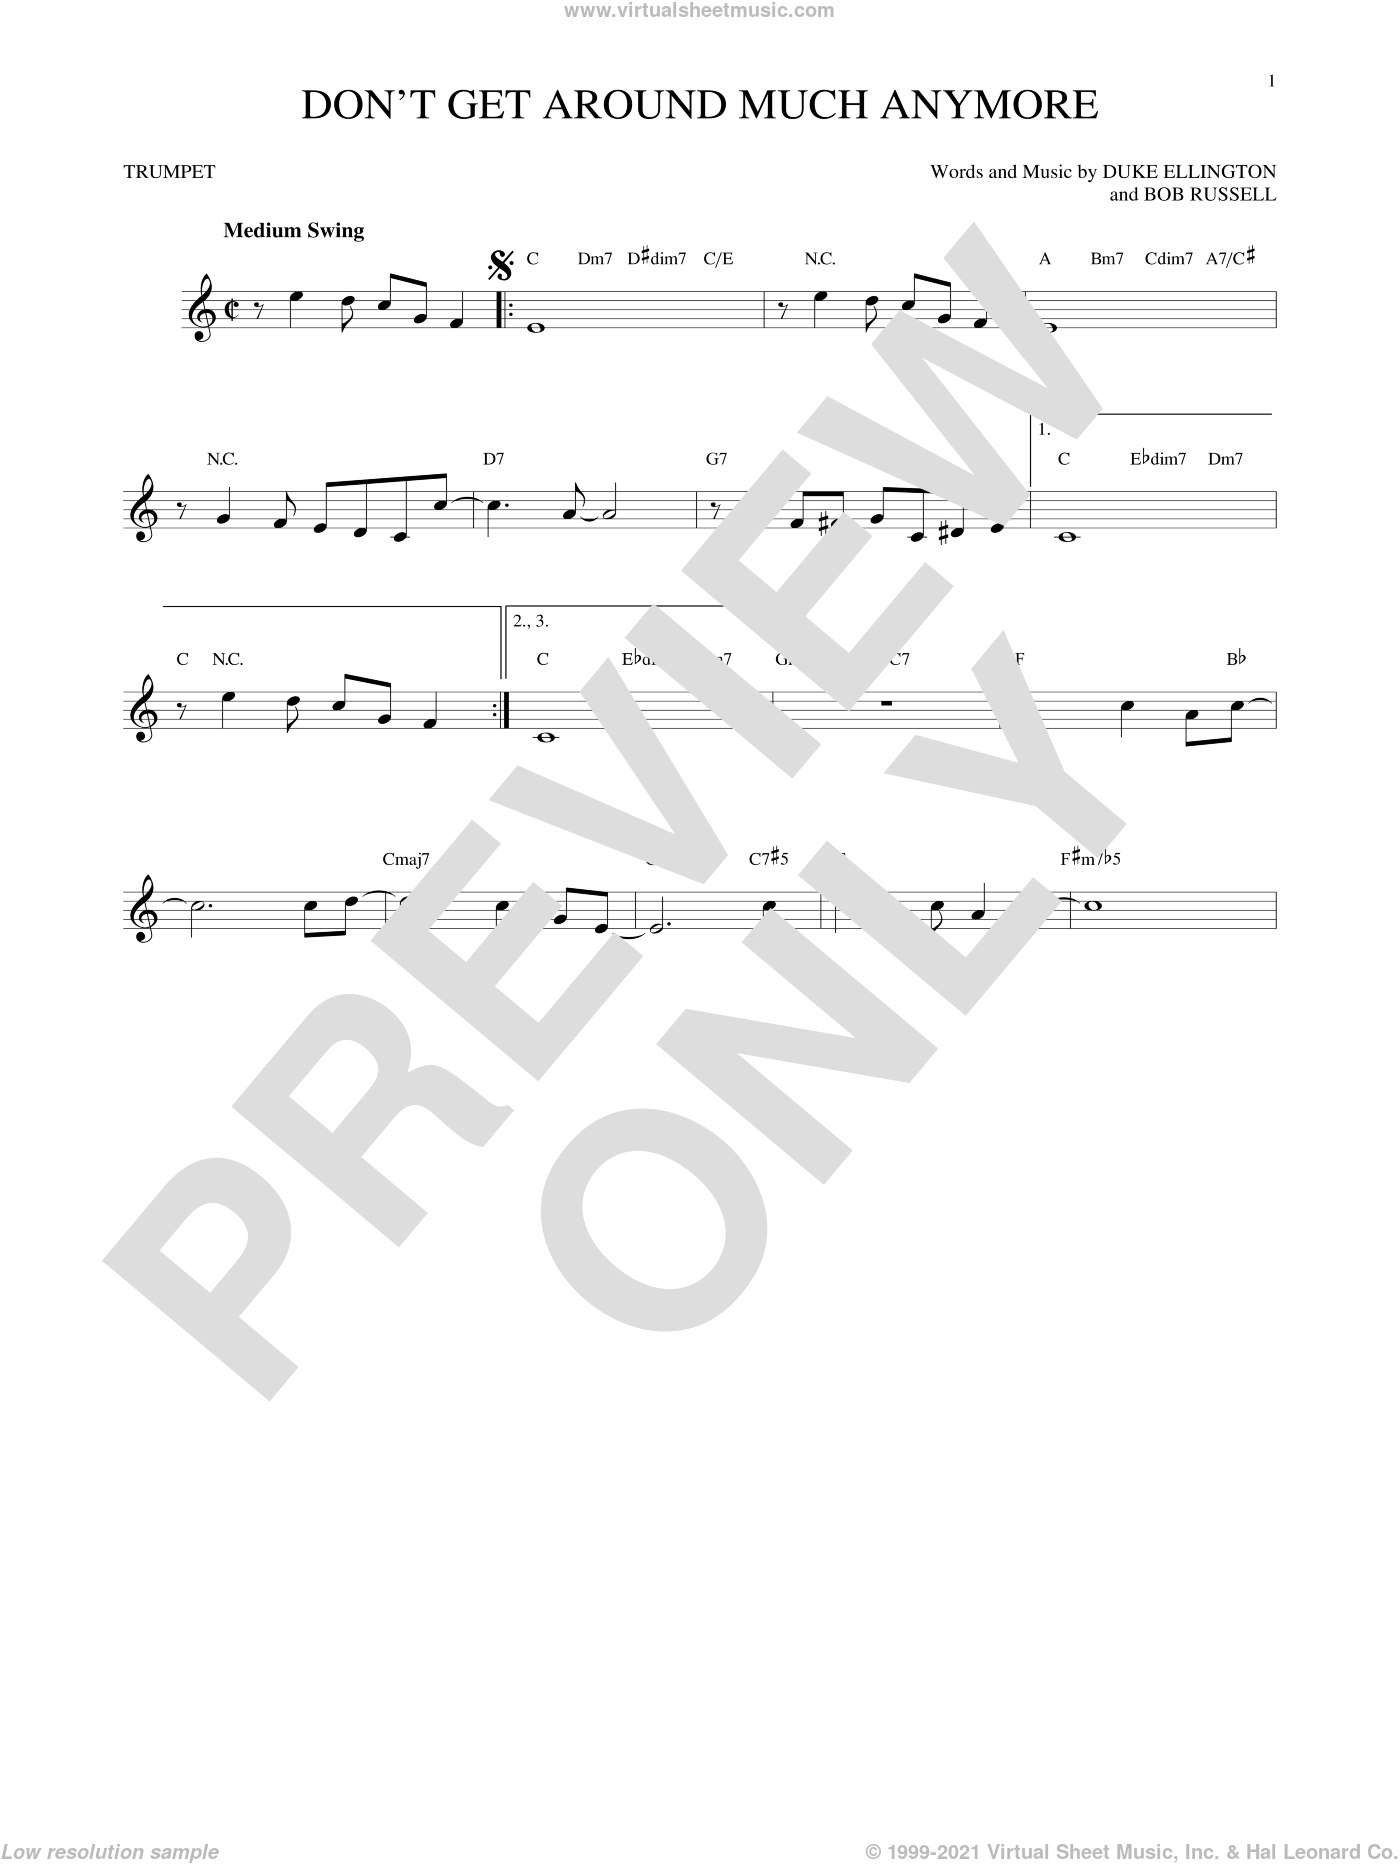 Don't Get Around Much Anymore sheet music for trumpet solo by Duke Ellington and Bob Russell, intermediate. Score Image Preview.